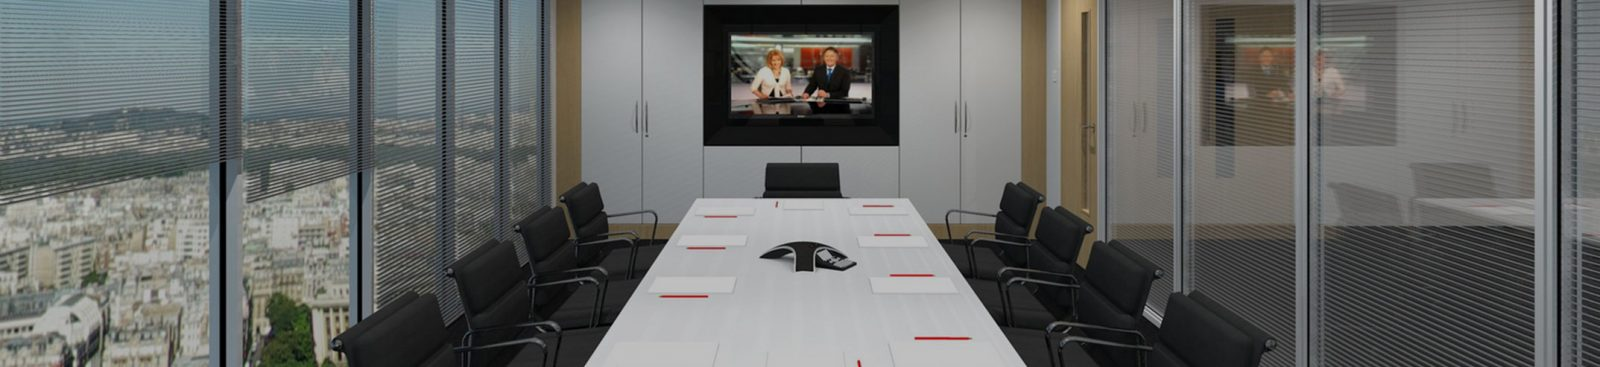 Conference room design: Important things to consider image